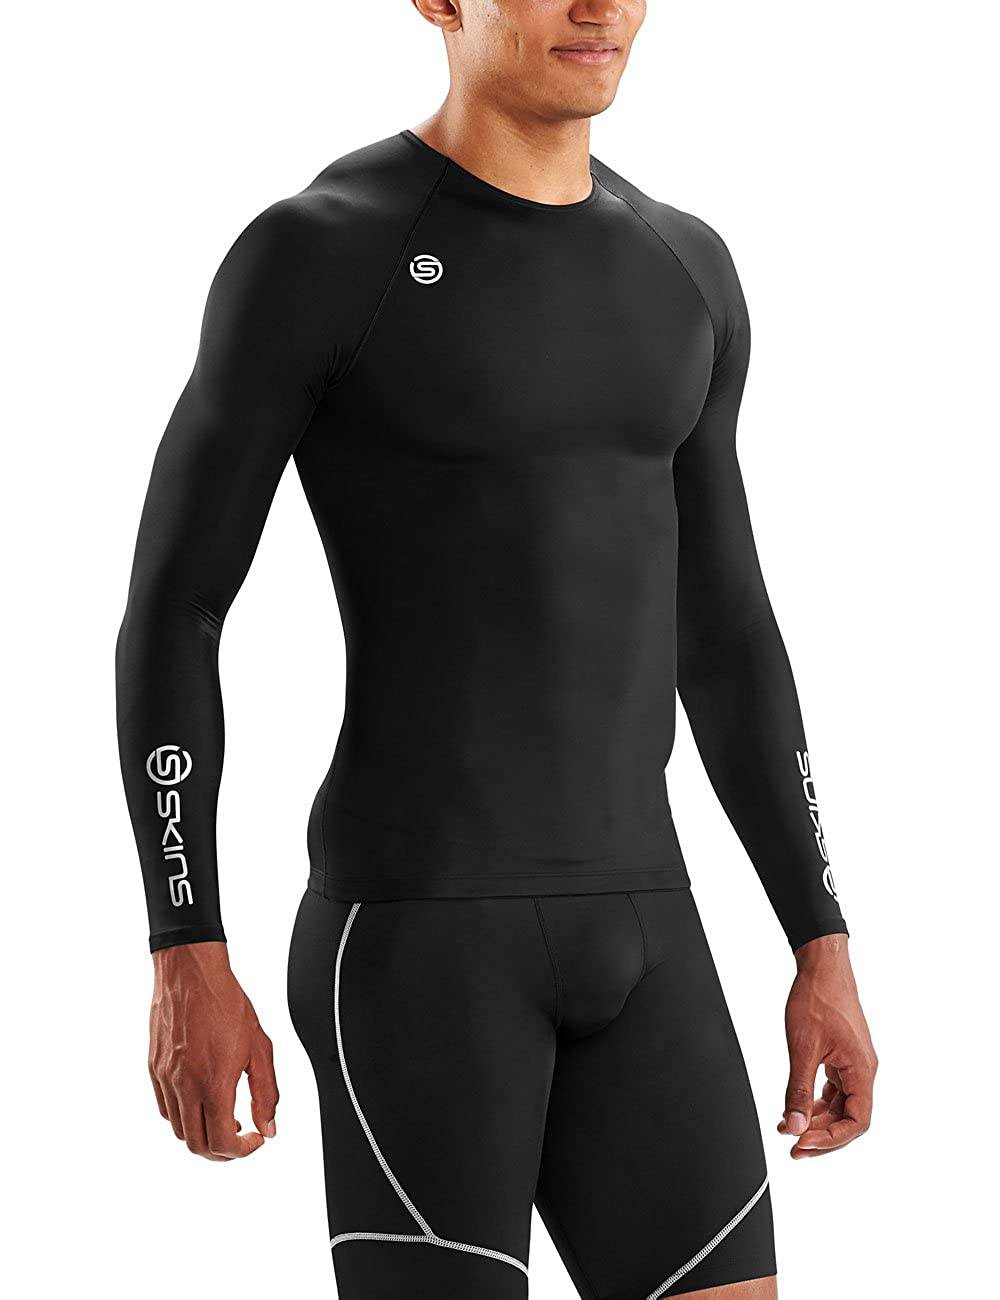 0ea0236a0a8 Skins DNAmic Team Compression Long Sleeve Top  Amazon.co.uk  Sports    Outdoors